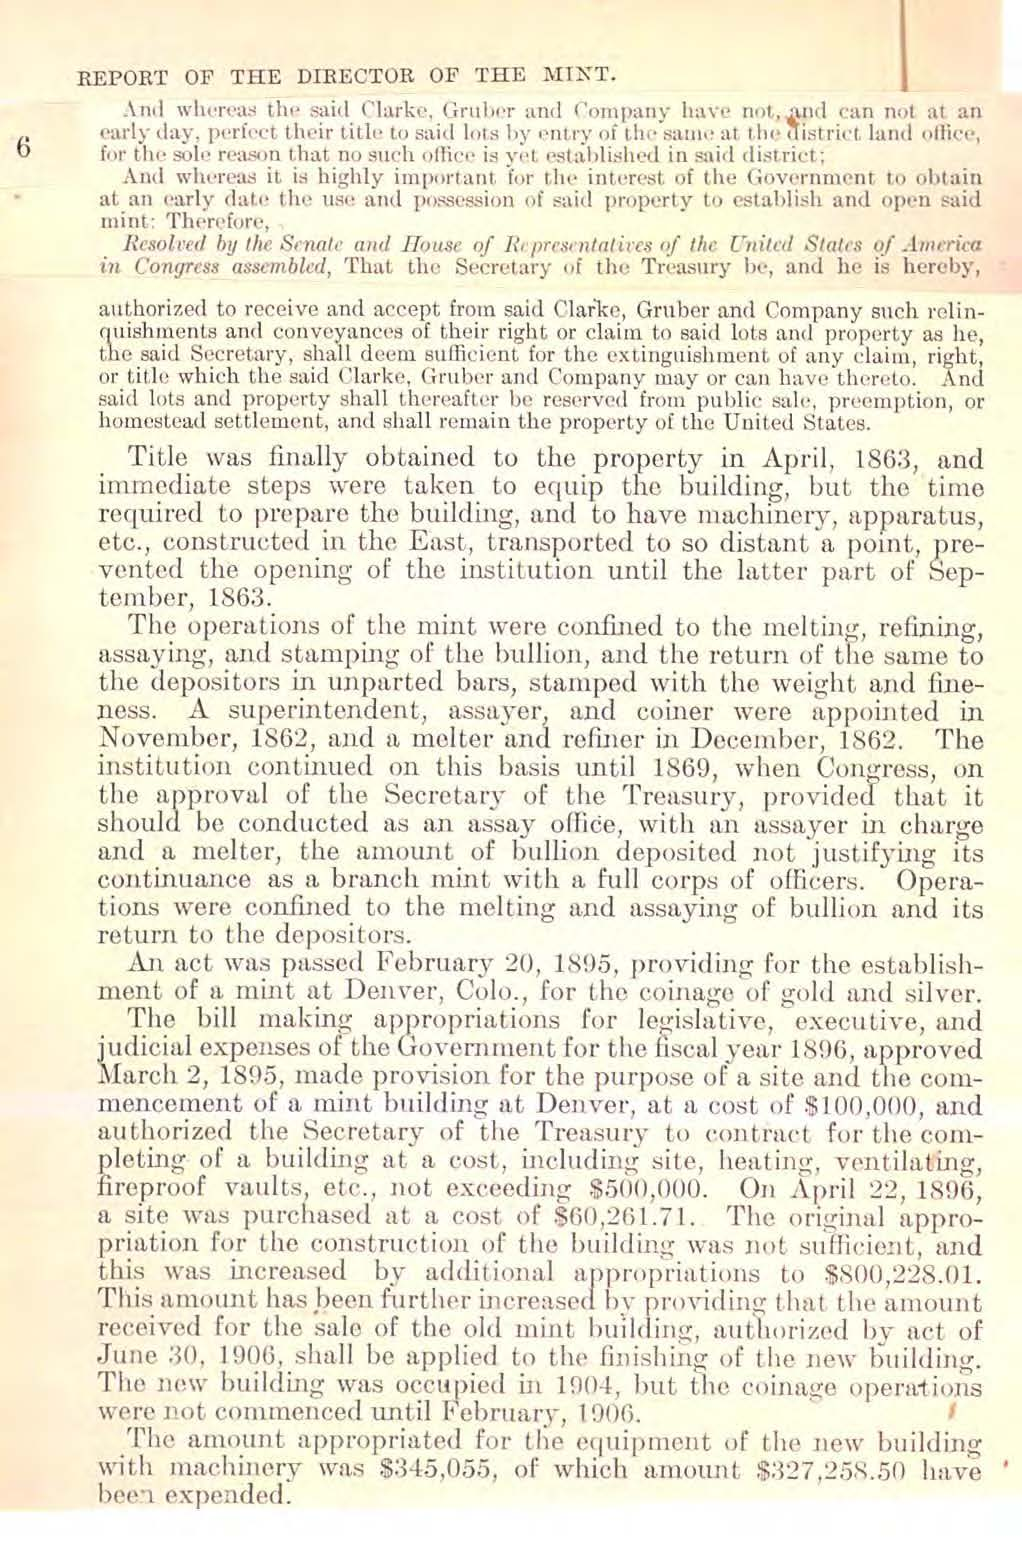 1906 Annual Report Excerpt, Page 6